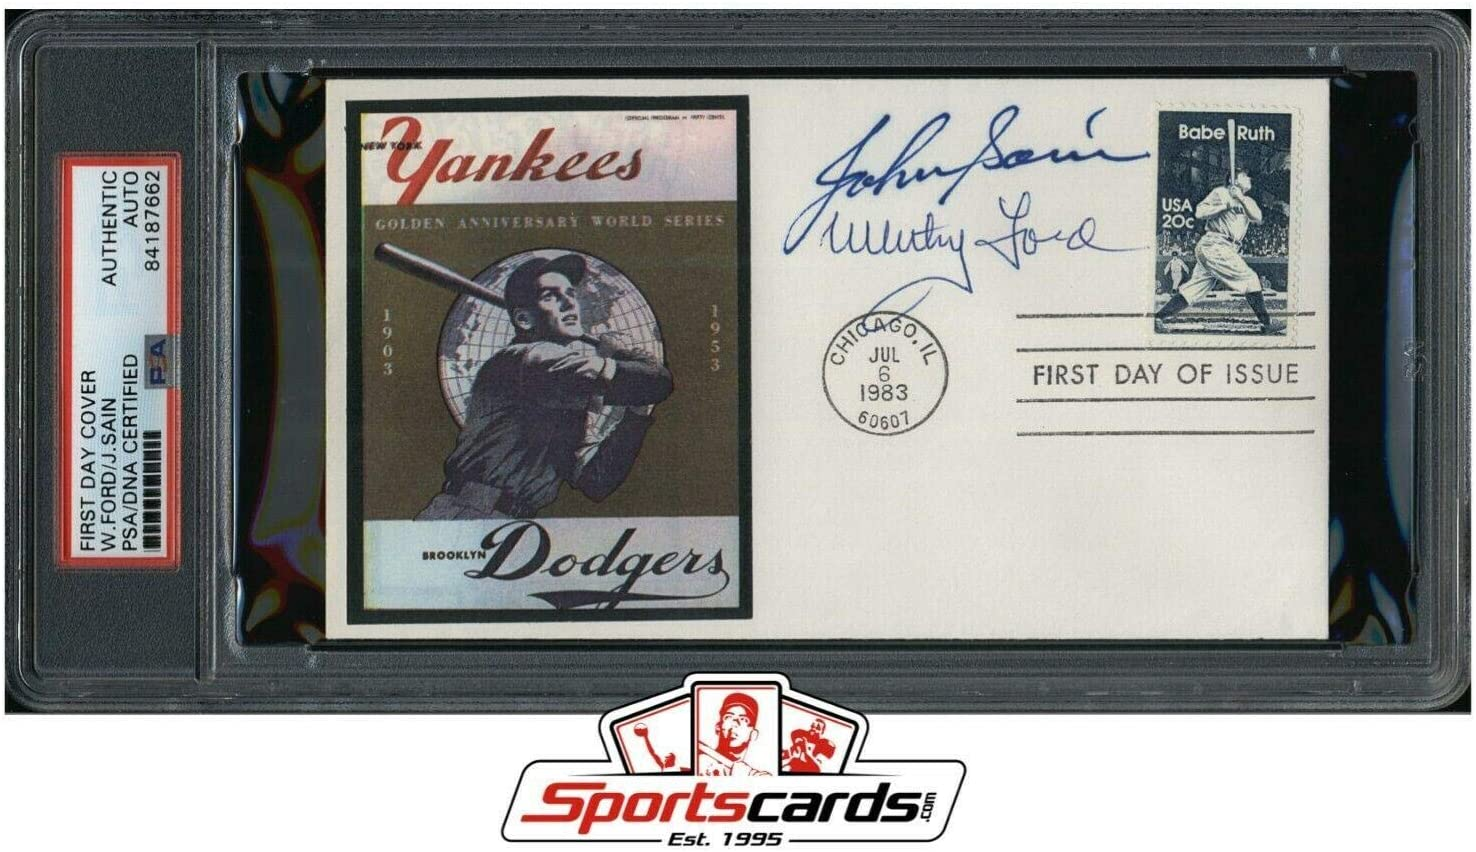 Whitey Ford Johnny Sain Signed First Day Cover Issue MLB HOF - PSA/DNA Certified - MLB Cut Signatures